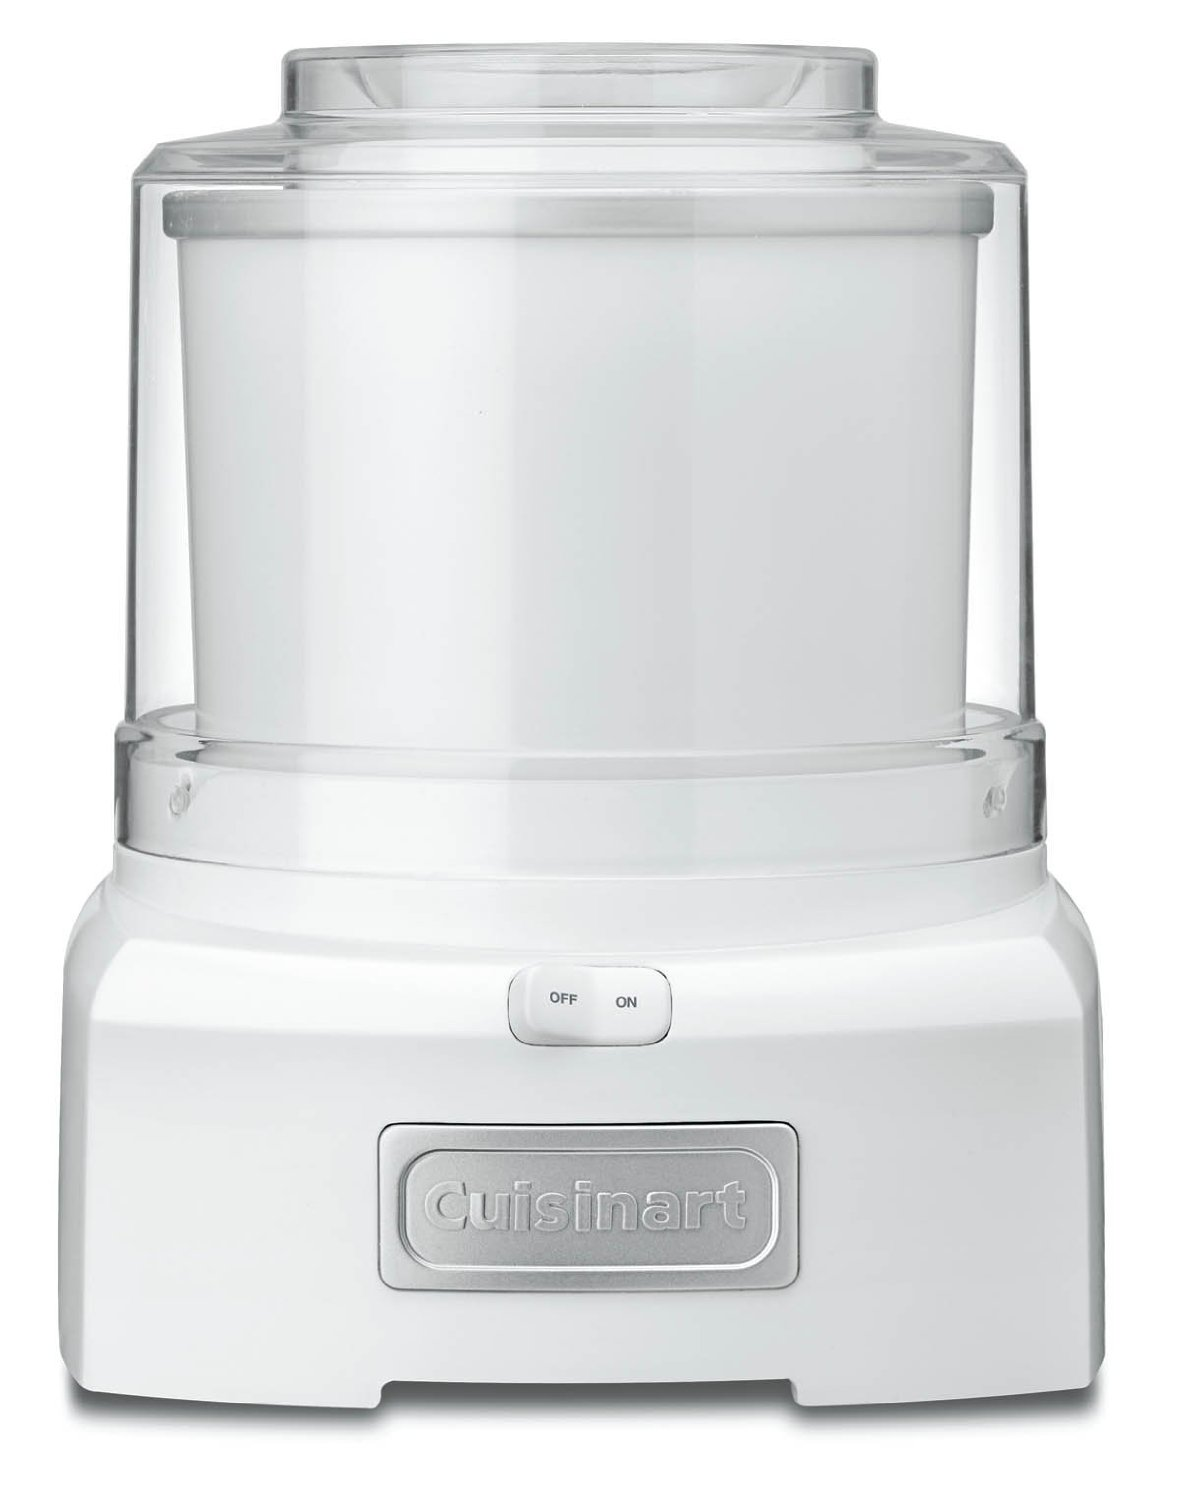 cuisinart 1.5 quart frozen ice cream maker